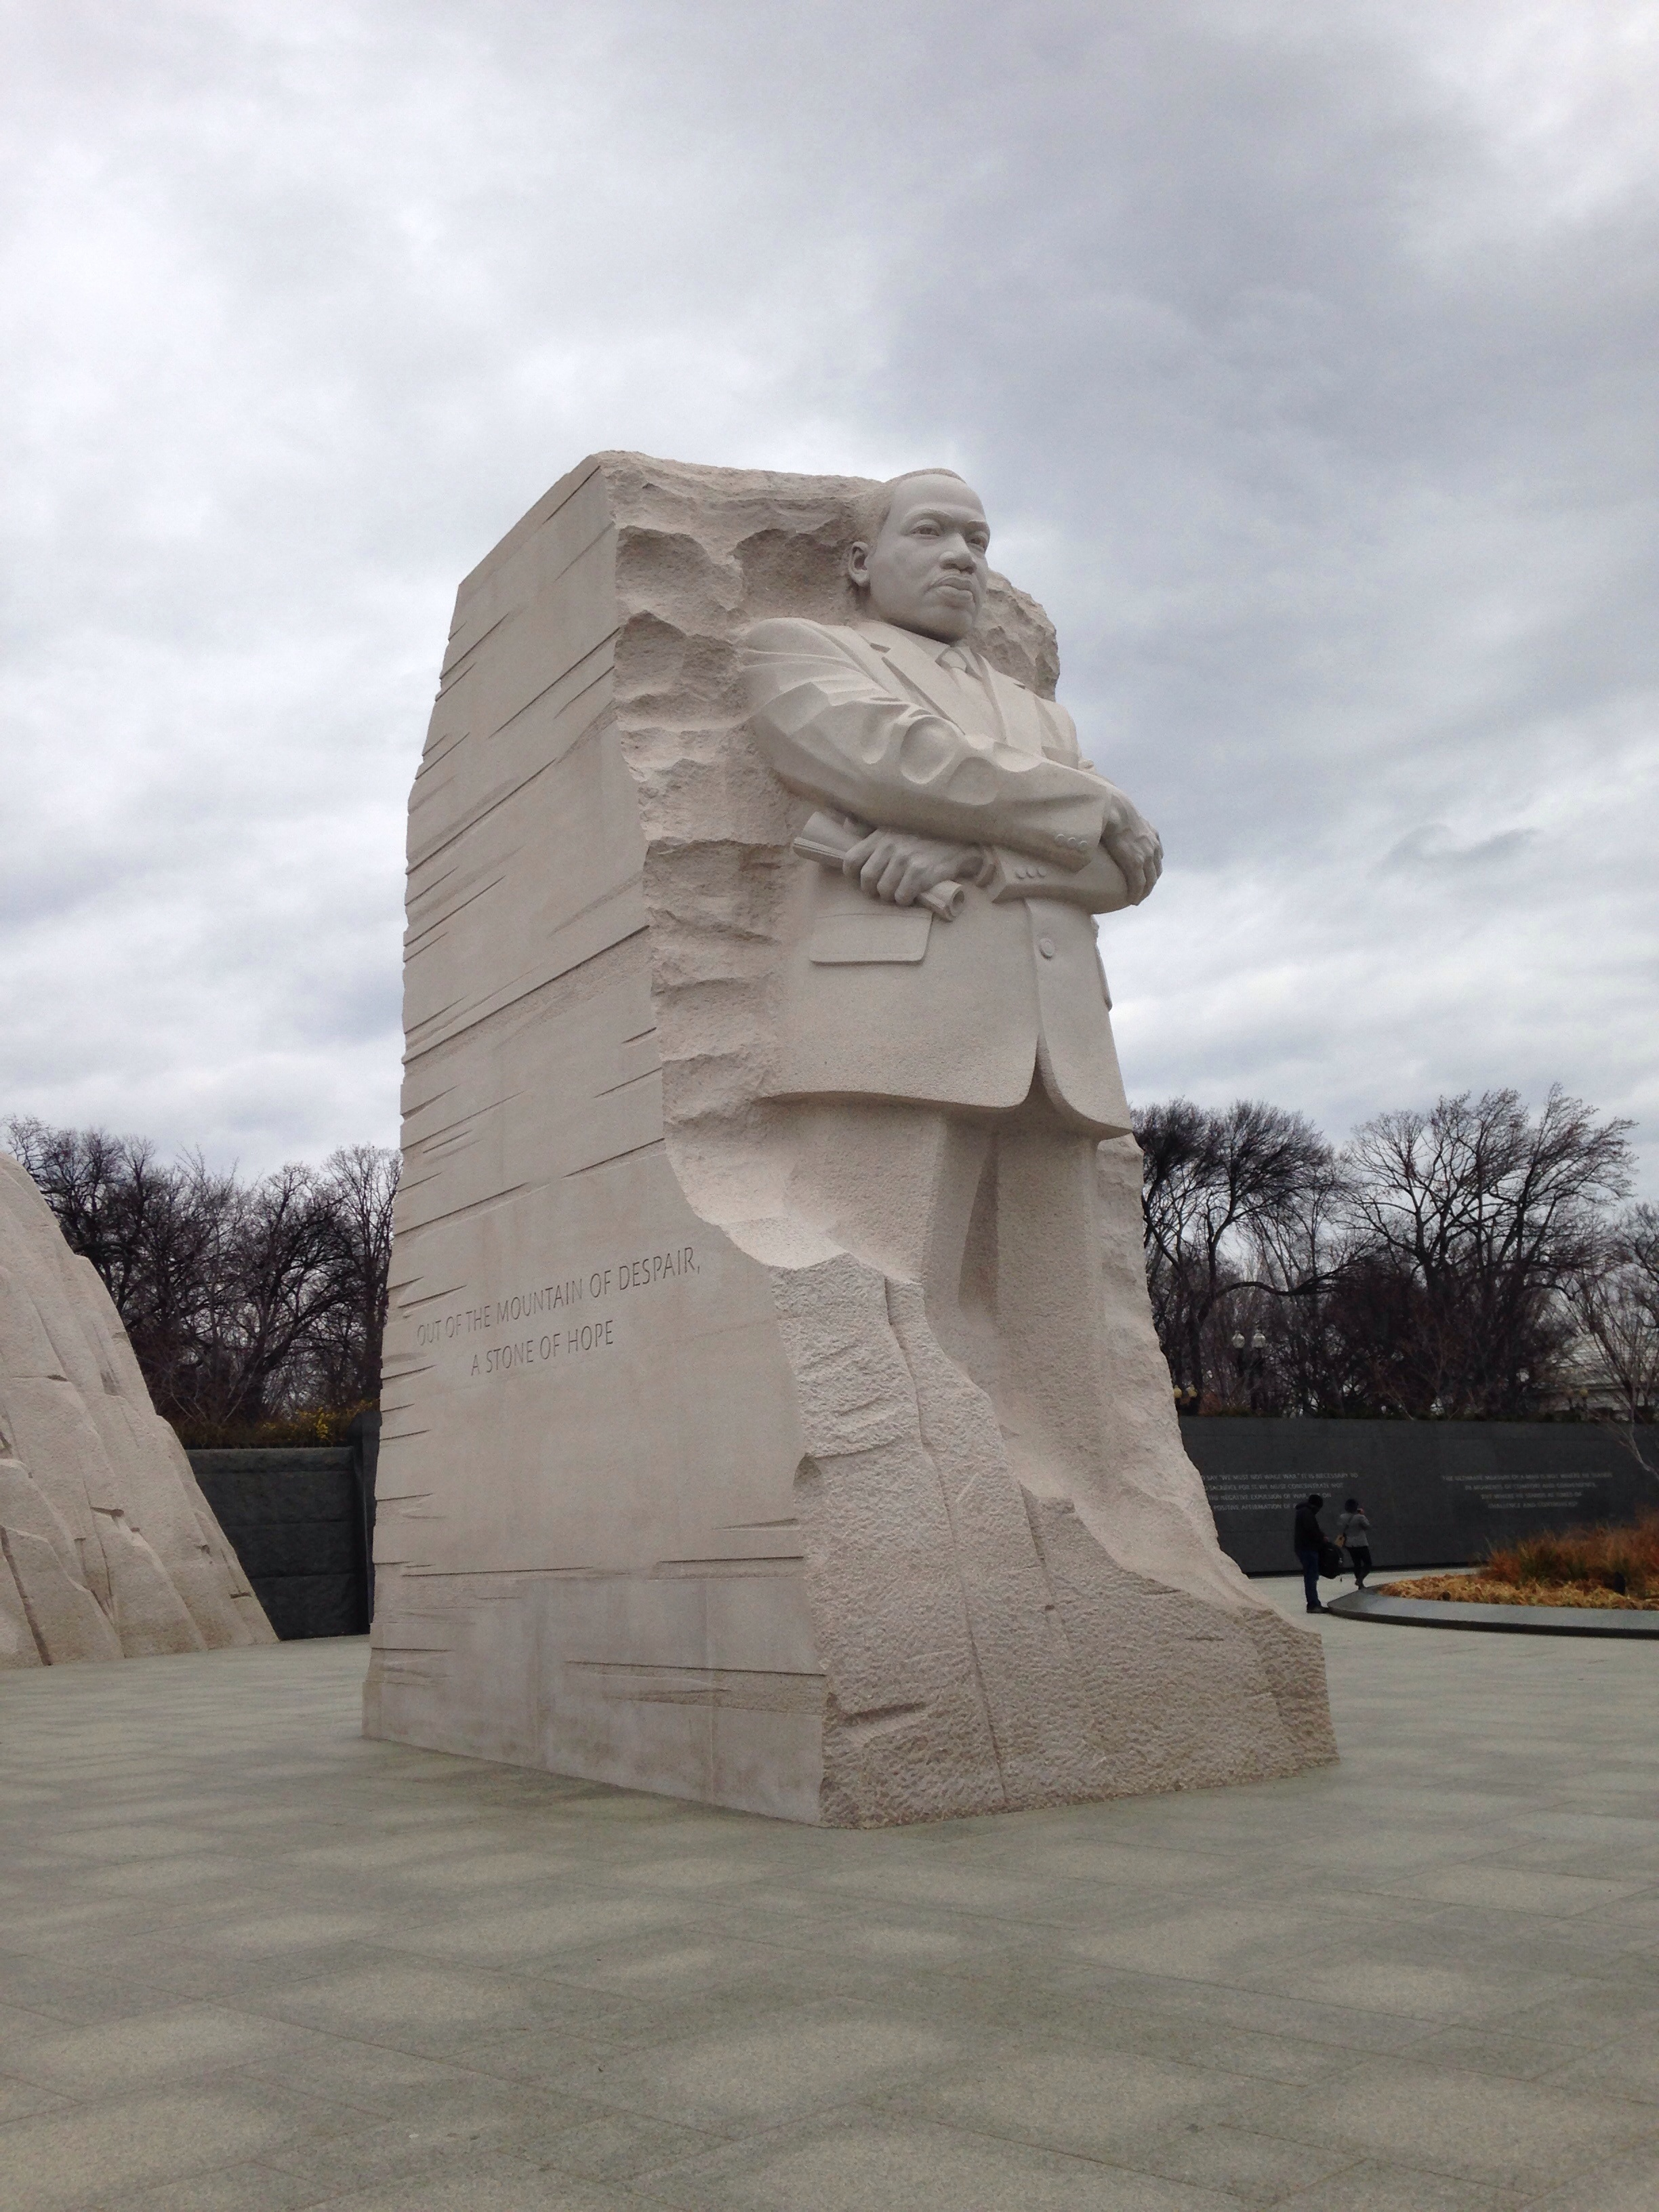 The Dr. King Memorial in Washington D.C.